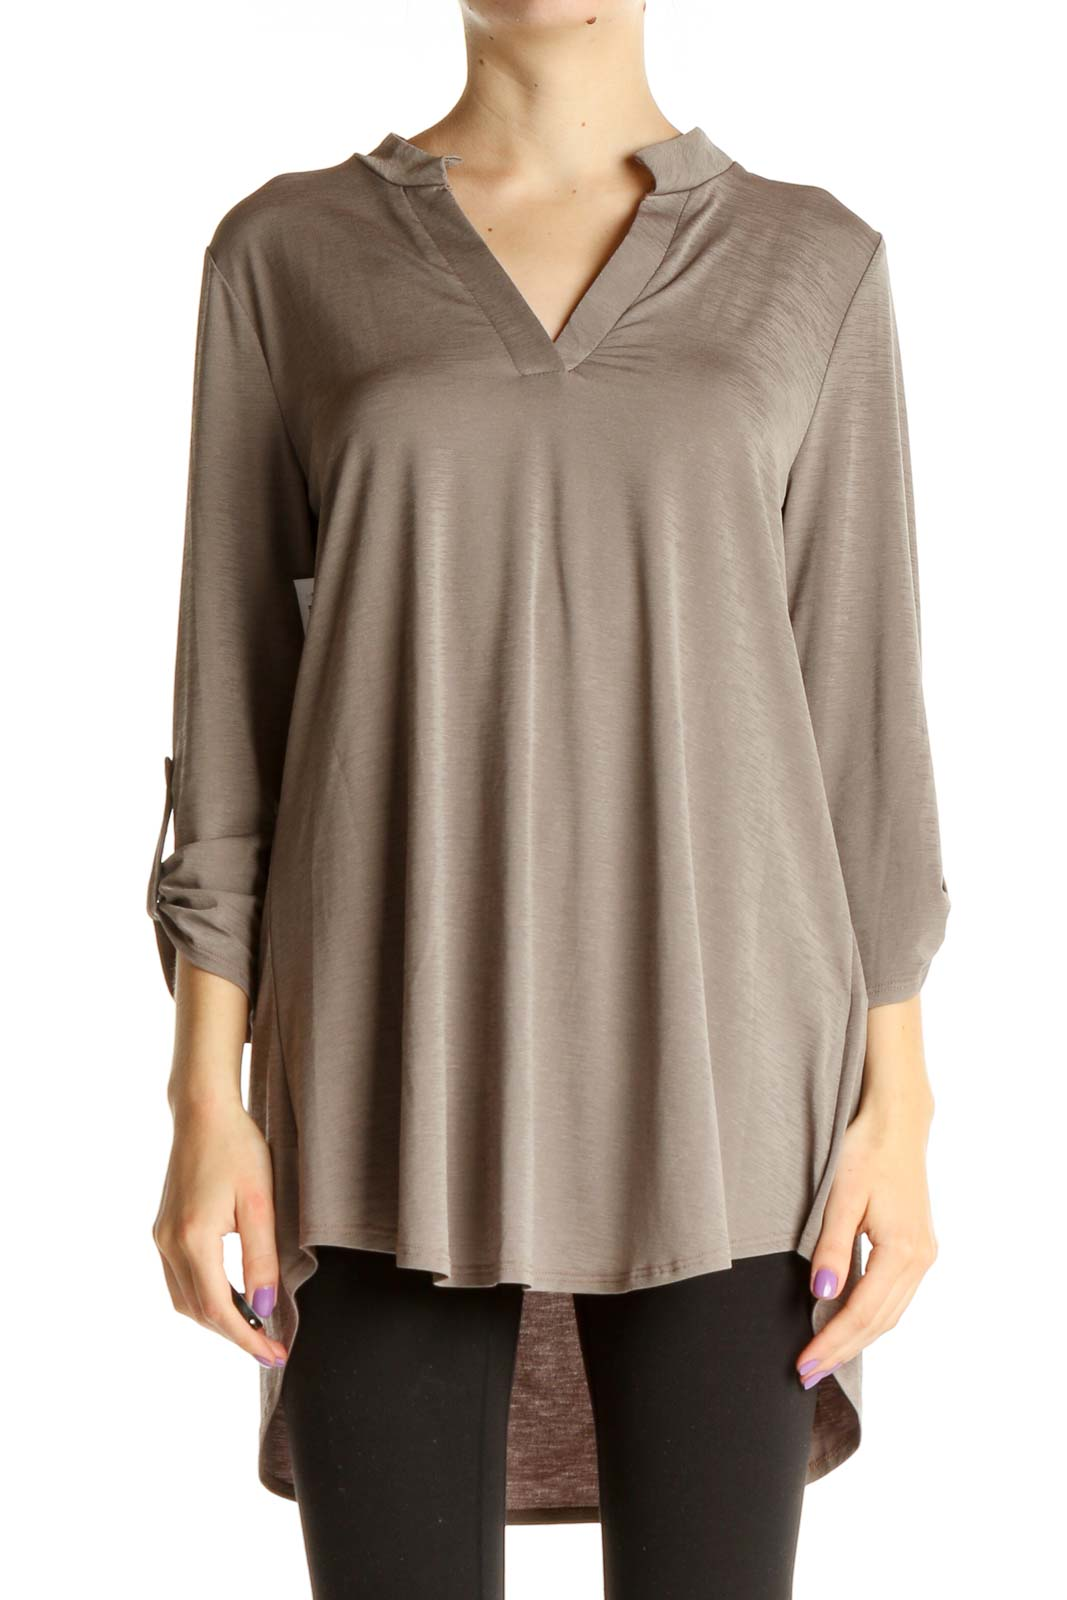 Gray Solid Blouse Front